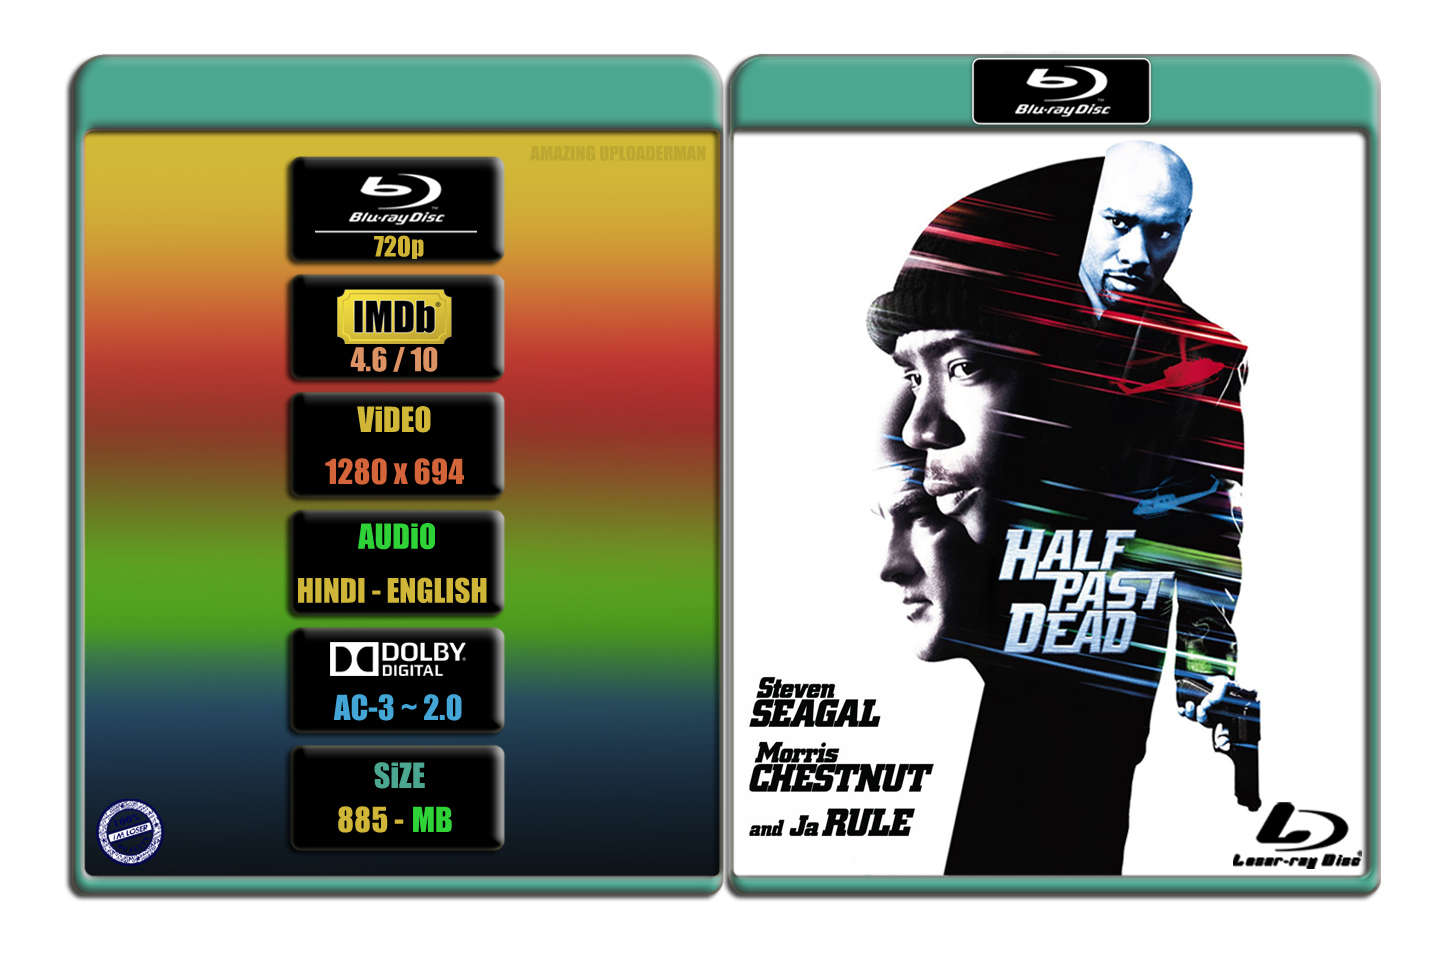 Half Past Dead [2002] 720p BR Rip x264 [AC-3 ~ 2.0] [HINDI – ENG] ® Im Loser ® 887 MB